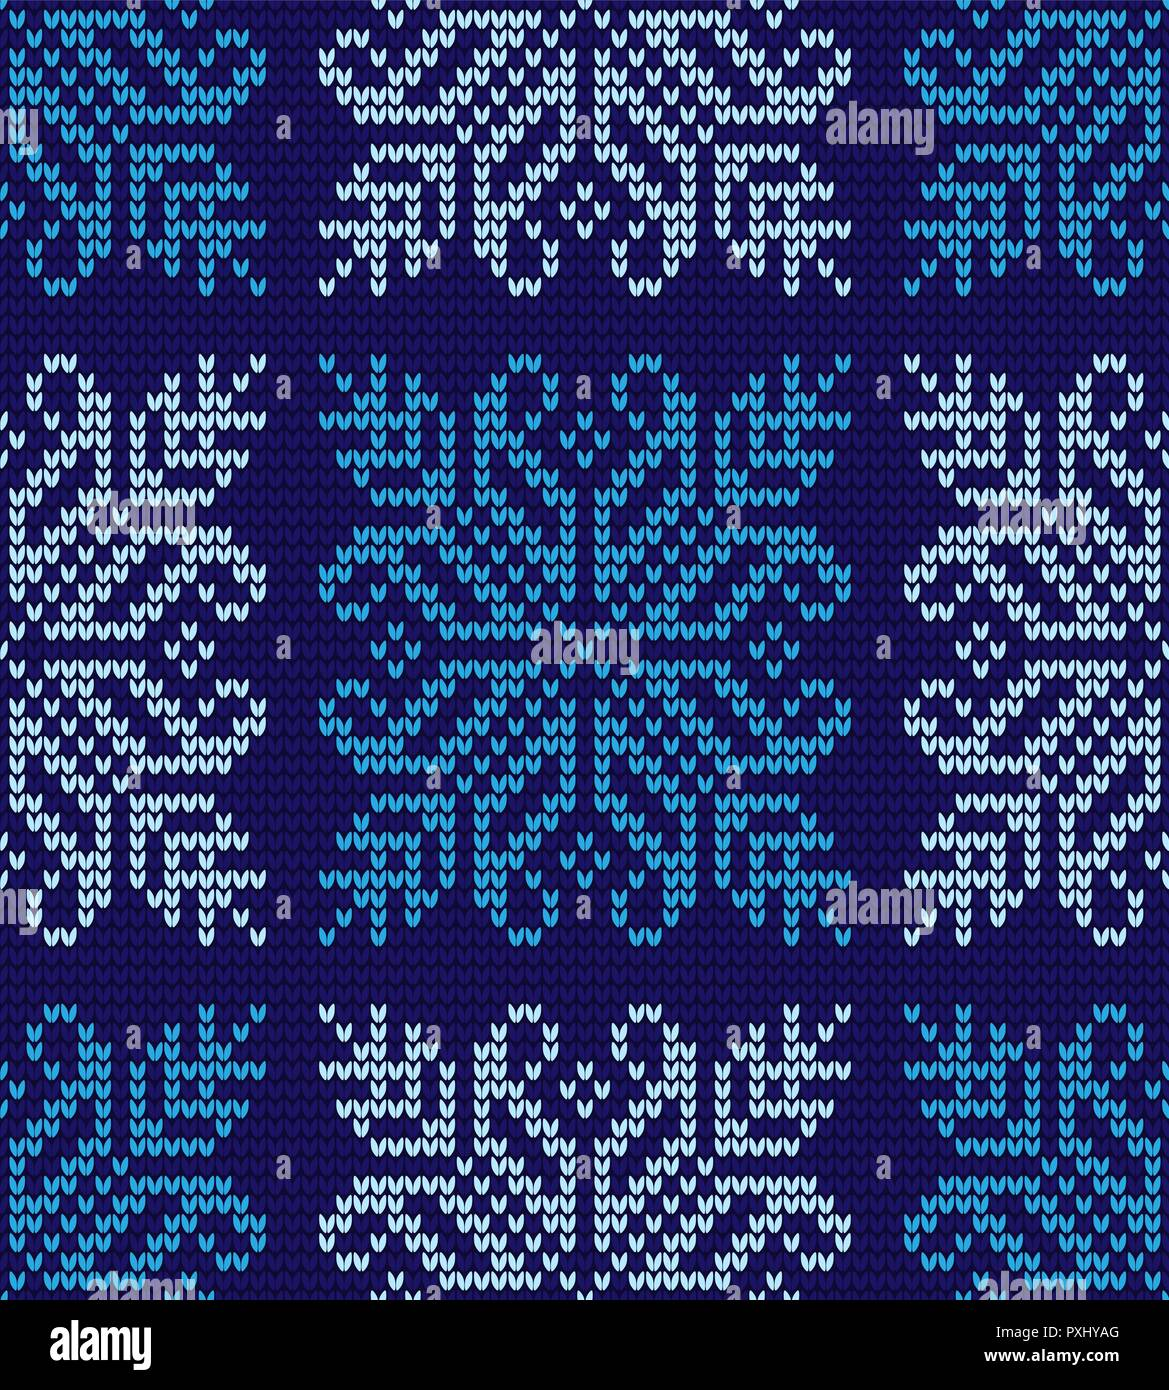 Abstract blue and white seamless knitting pattern with snowflakes background - Stock Vector